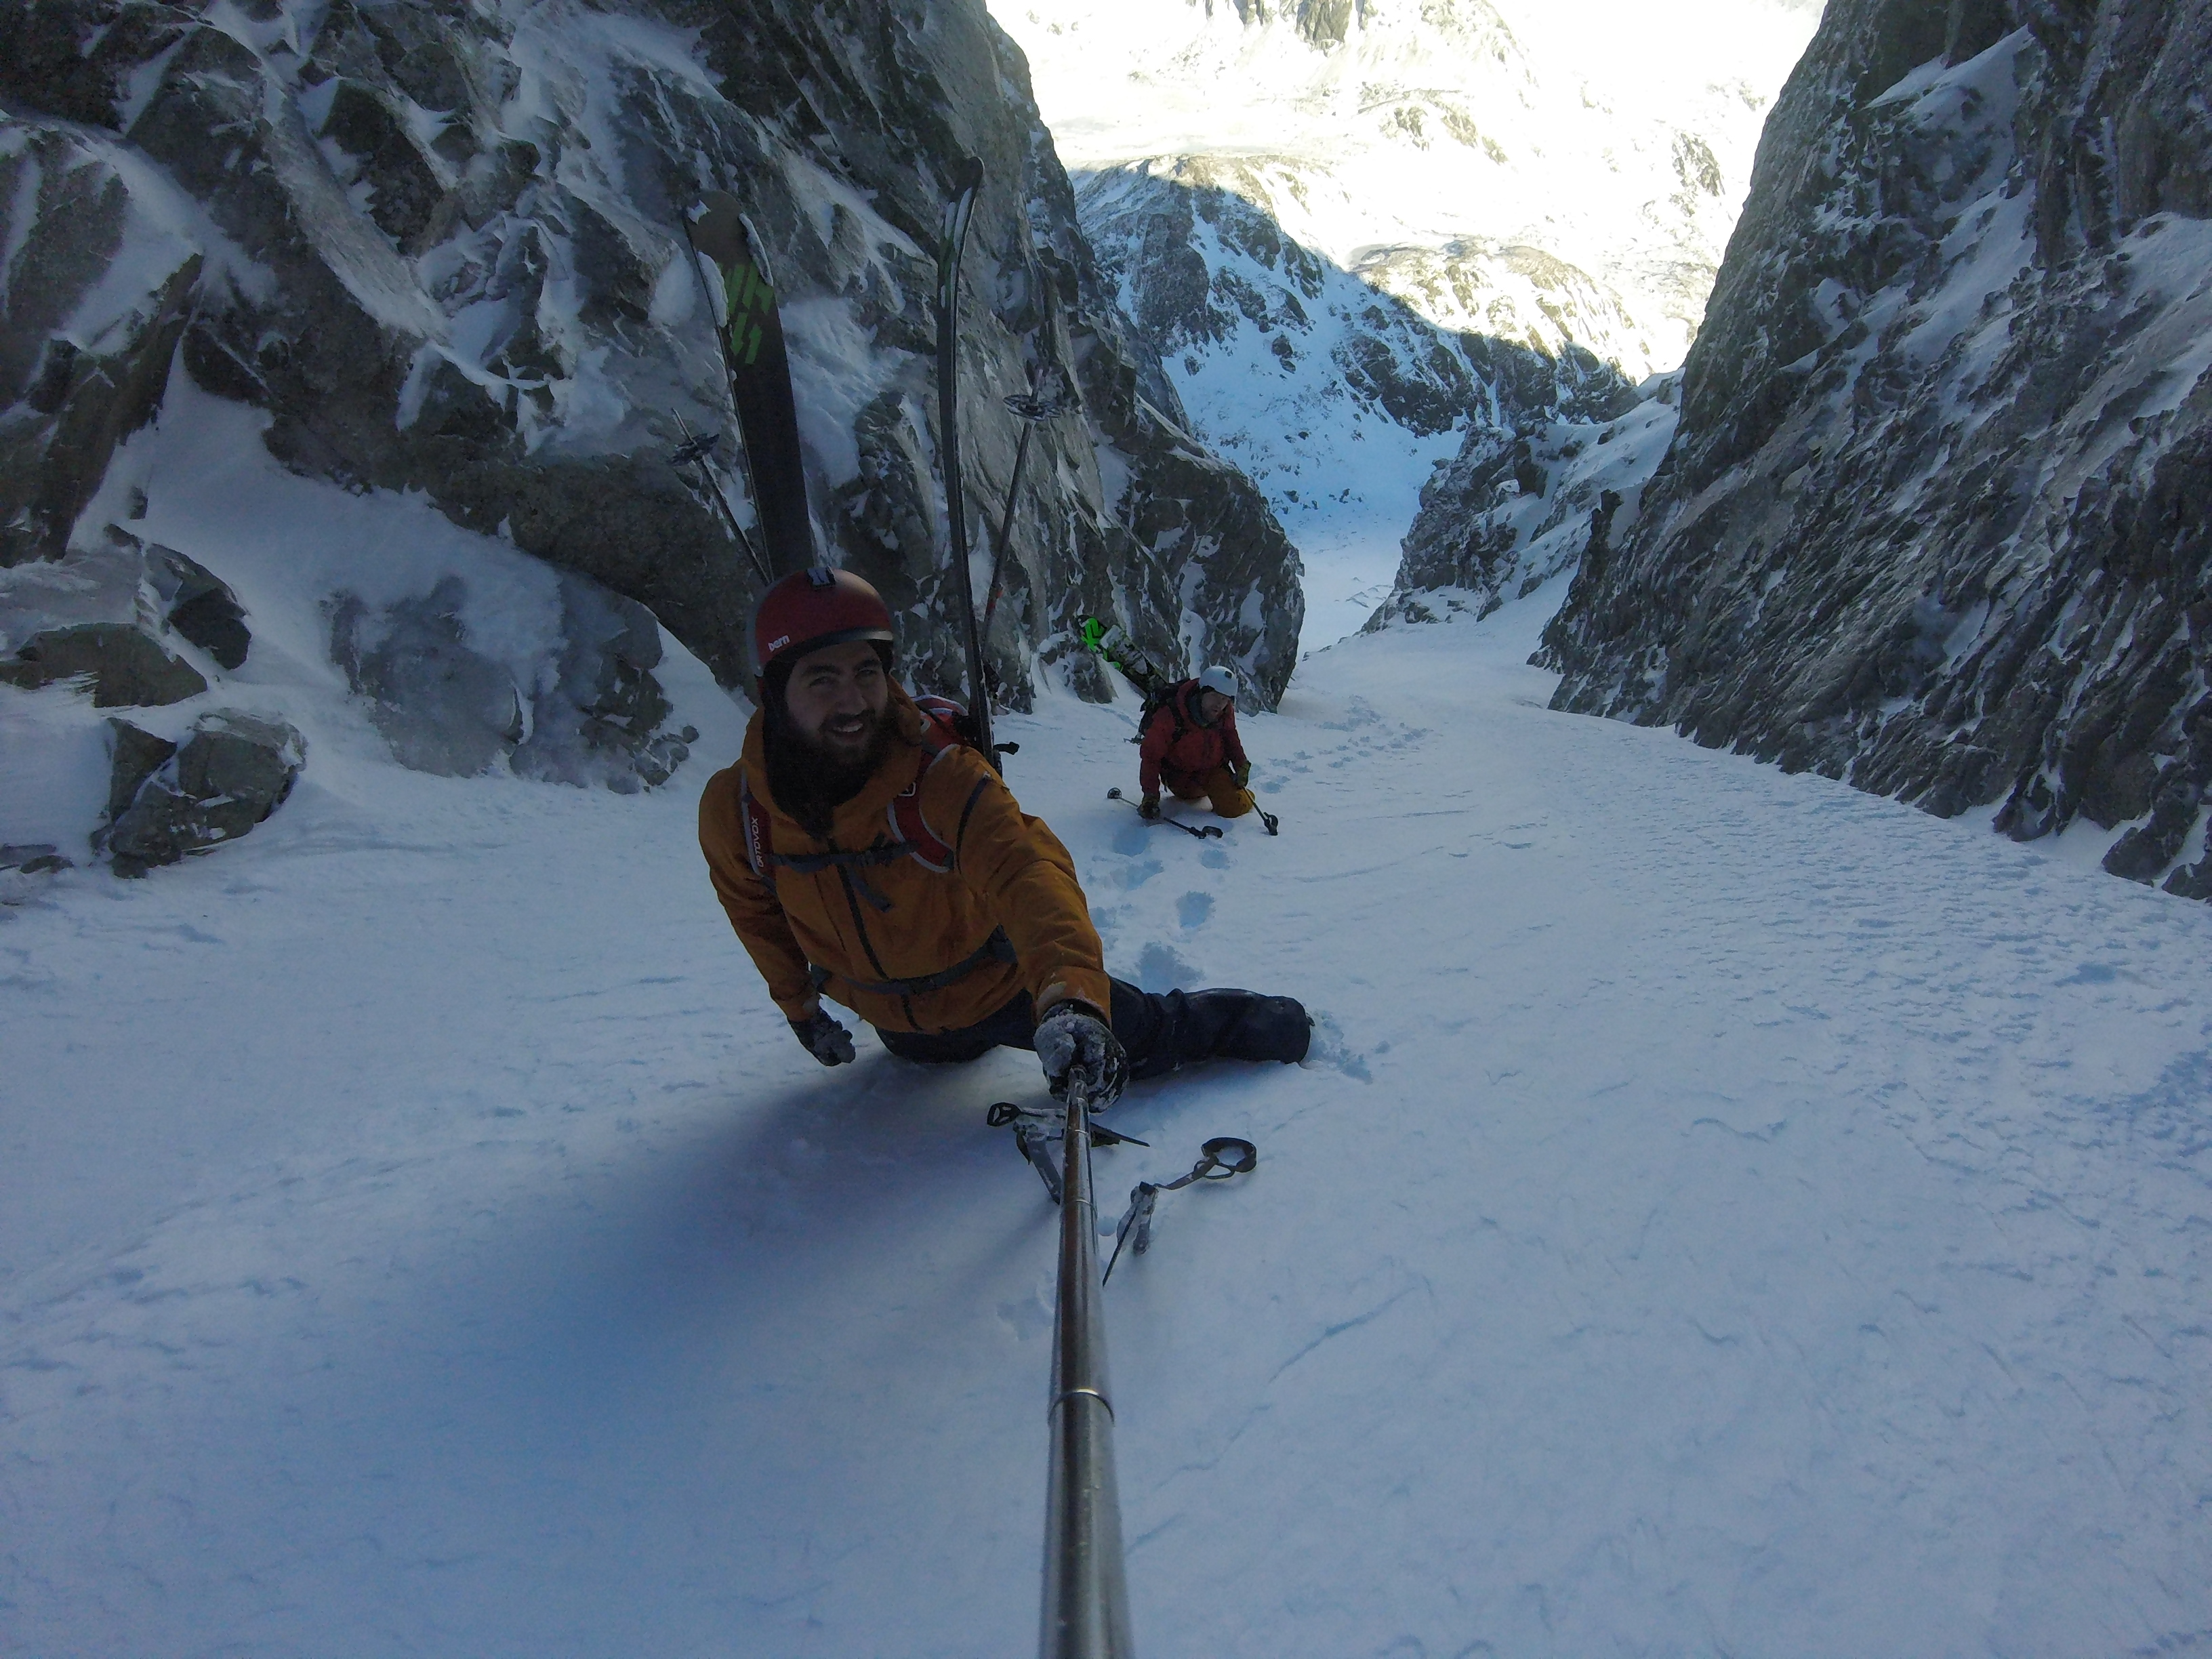 Ascending the satans couloir